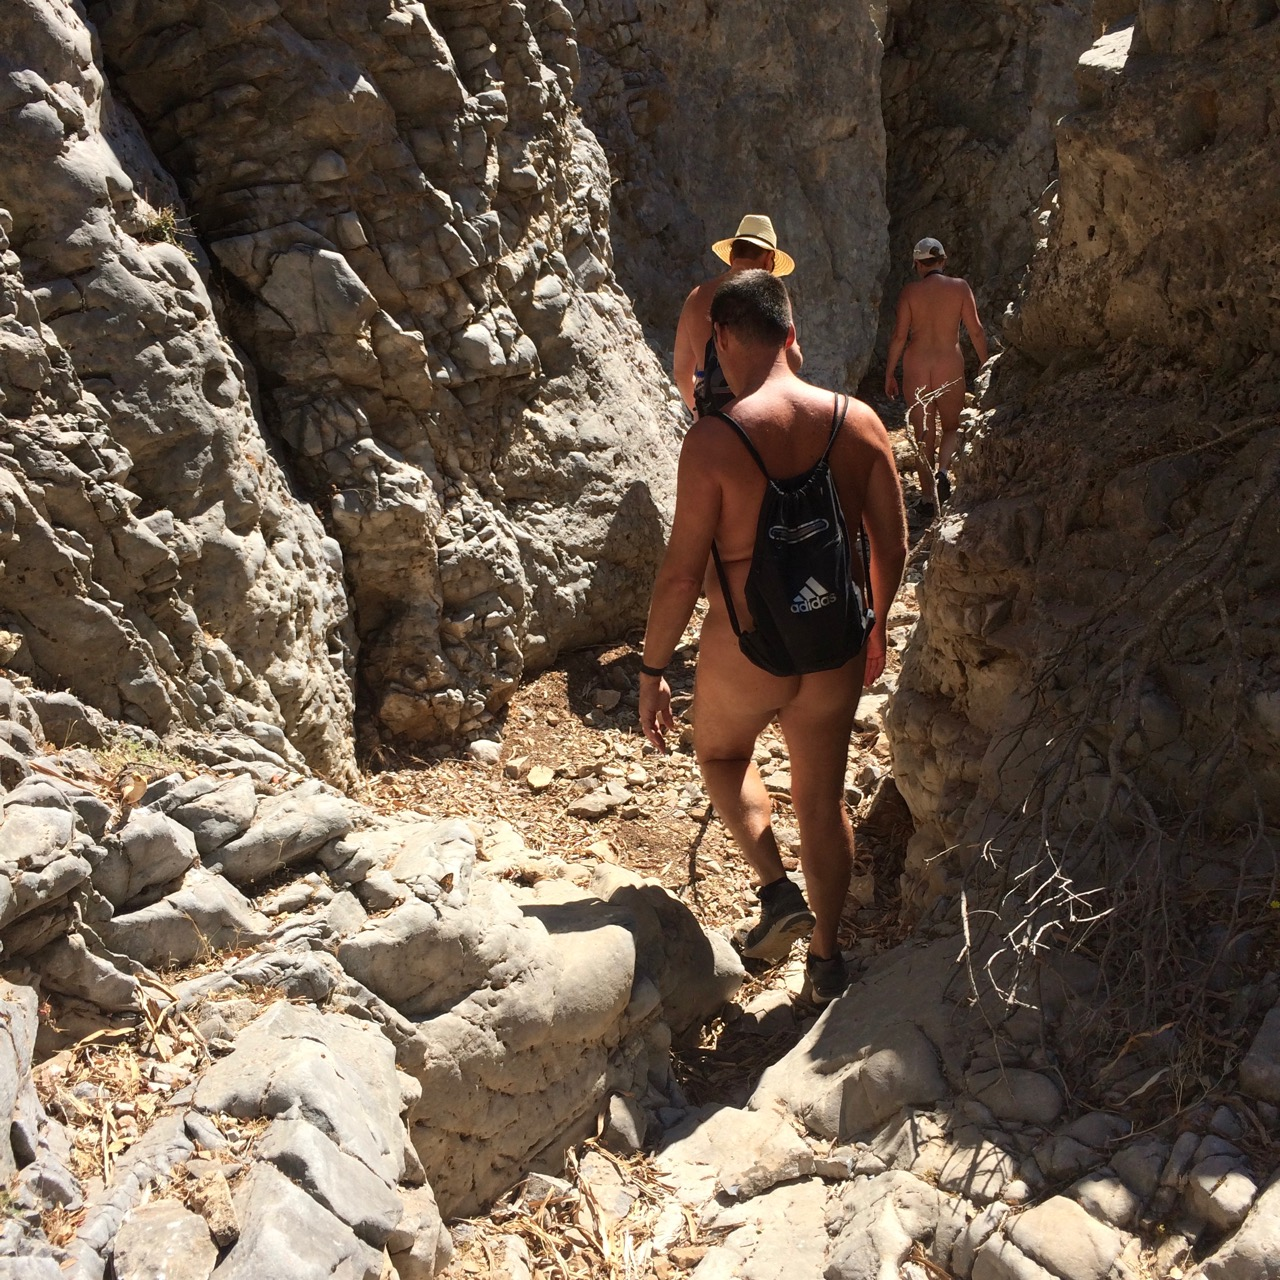 I ❤️ Naked Walks: Naturist Treks on European Islands (Part Two)